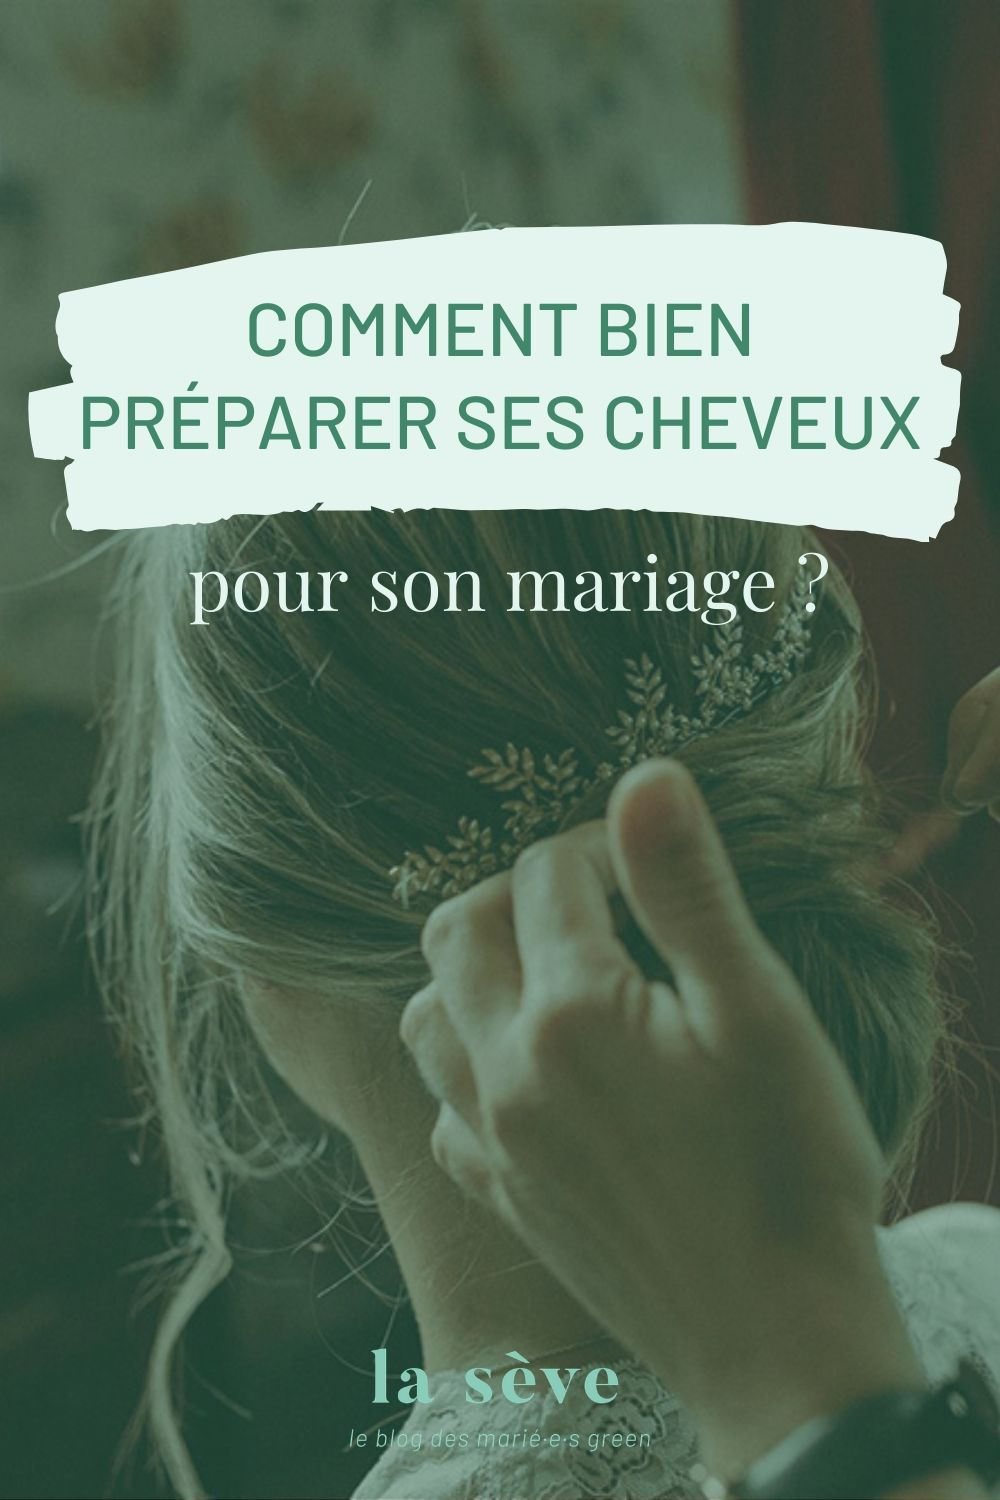 Epingler l'article sur Pinterest